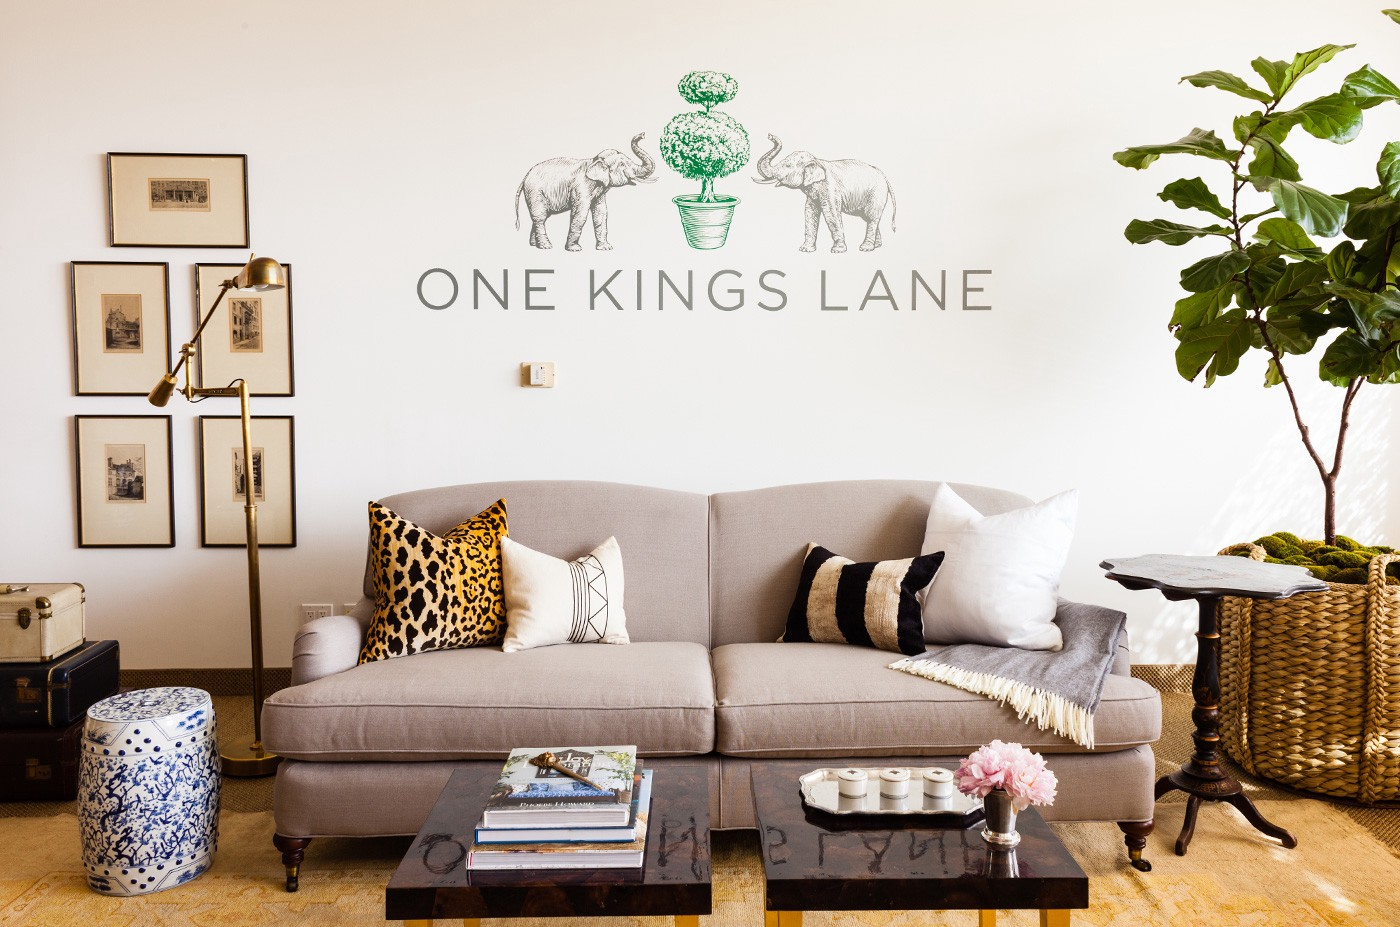 Bed Bath Beyond Acquires One Kings Lane